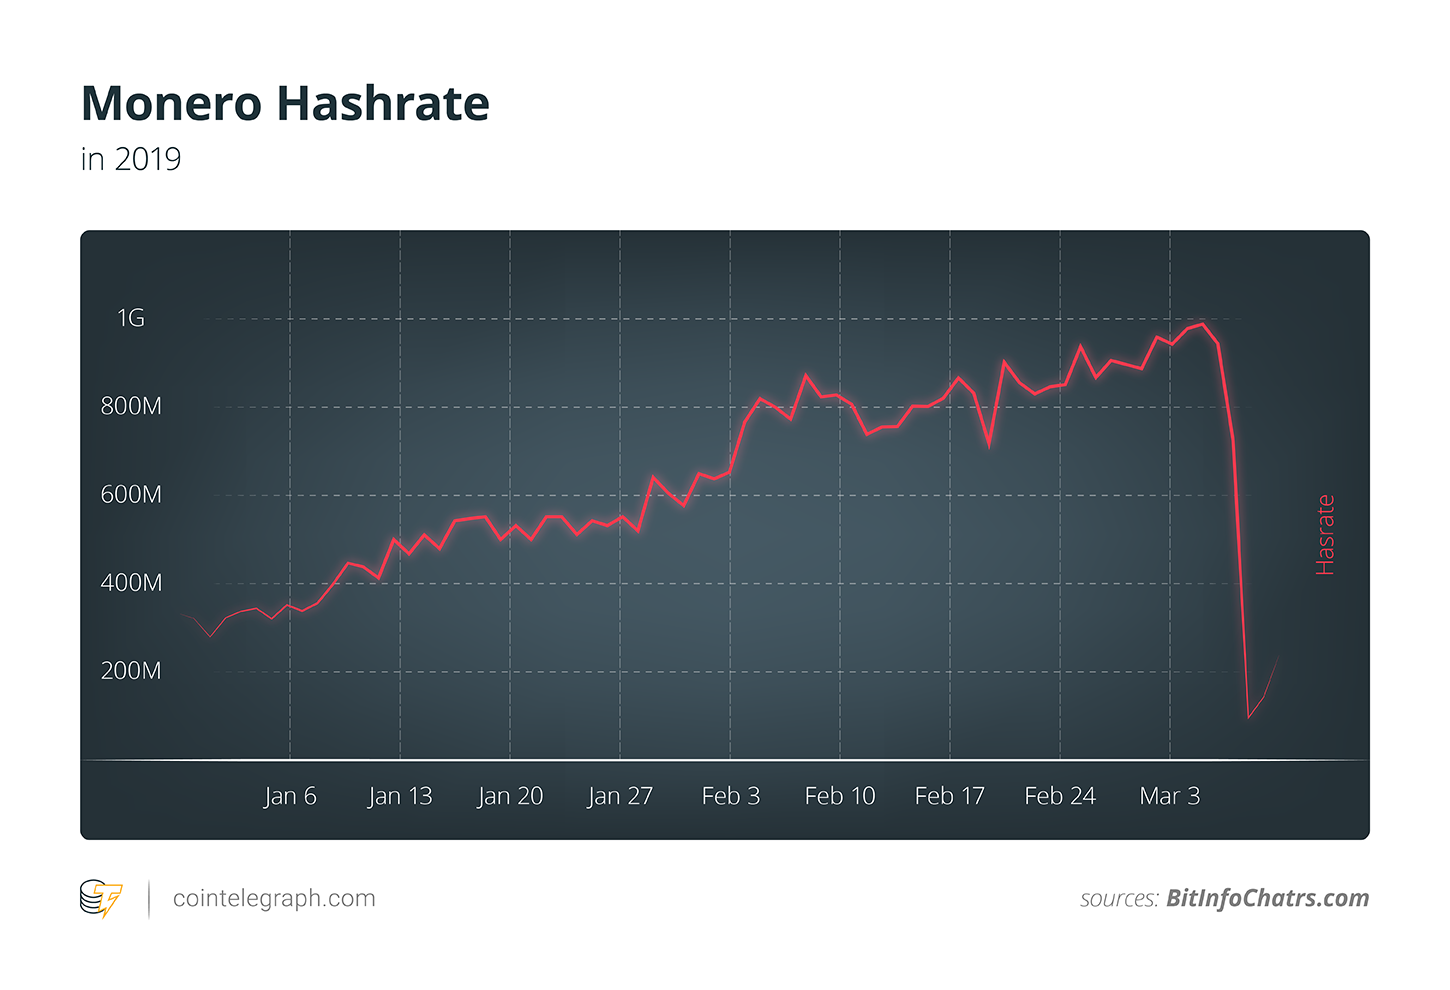 Monero Hashrate